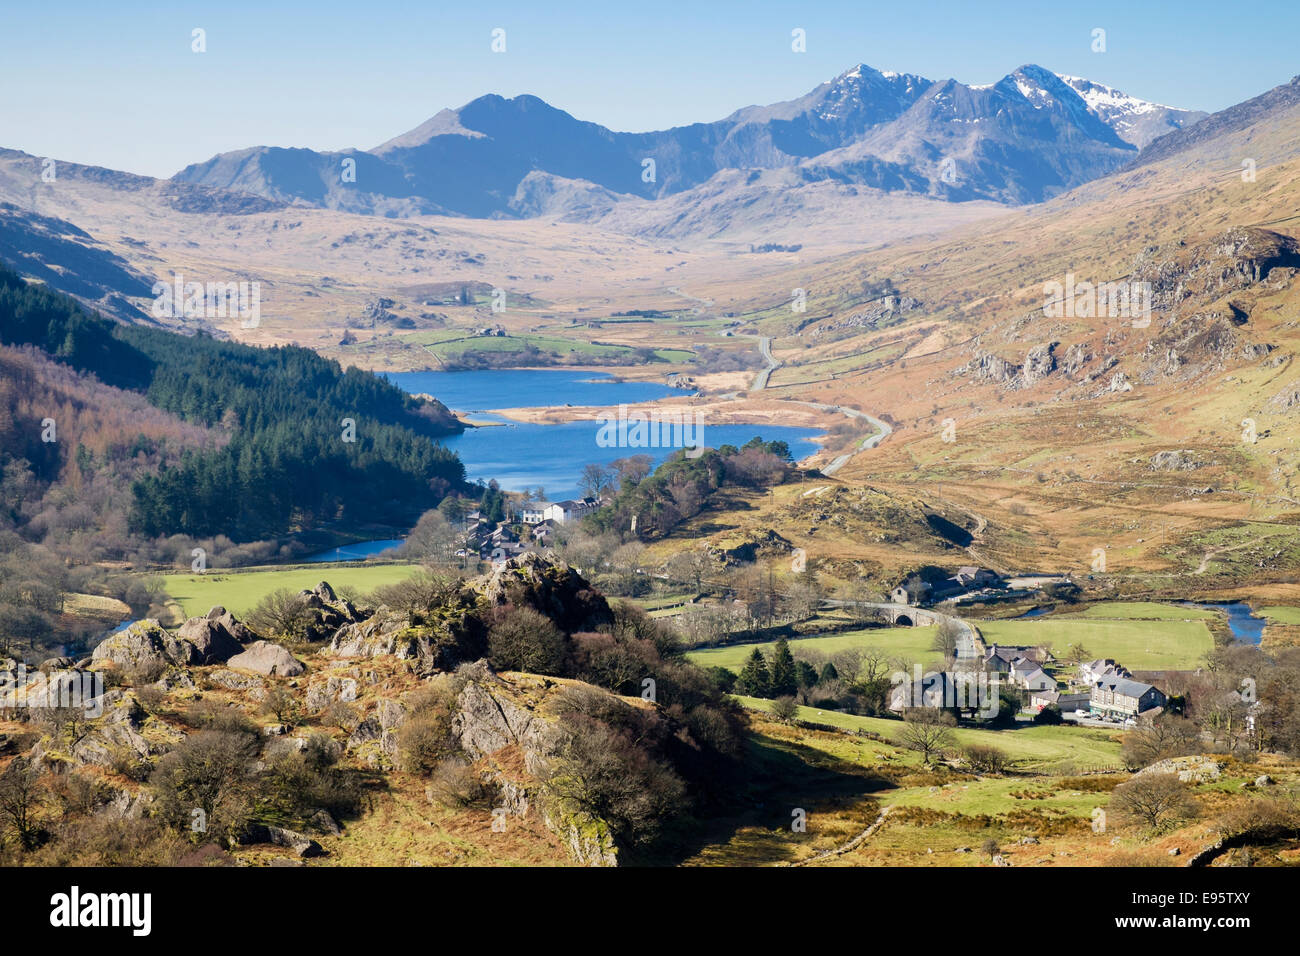 Scenic view above Capel Curig to Llynnau Mymbyr lakes and Snowdon Horseshoe in Snowdonia National Park mountains - Stock Image